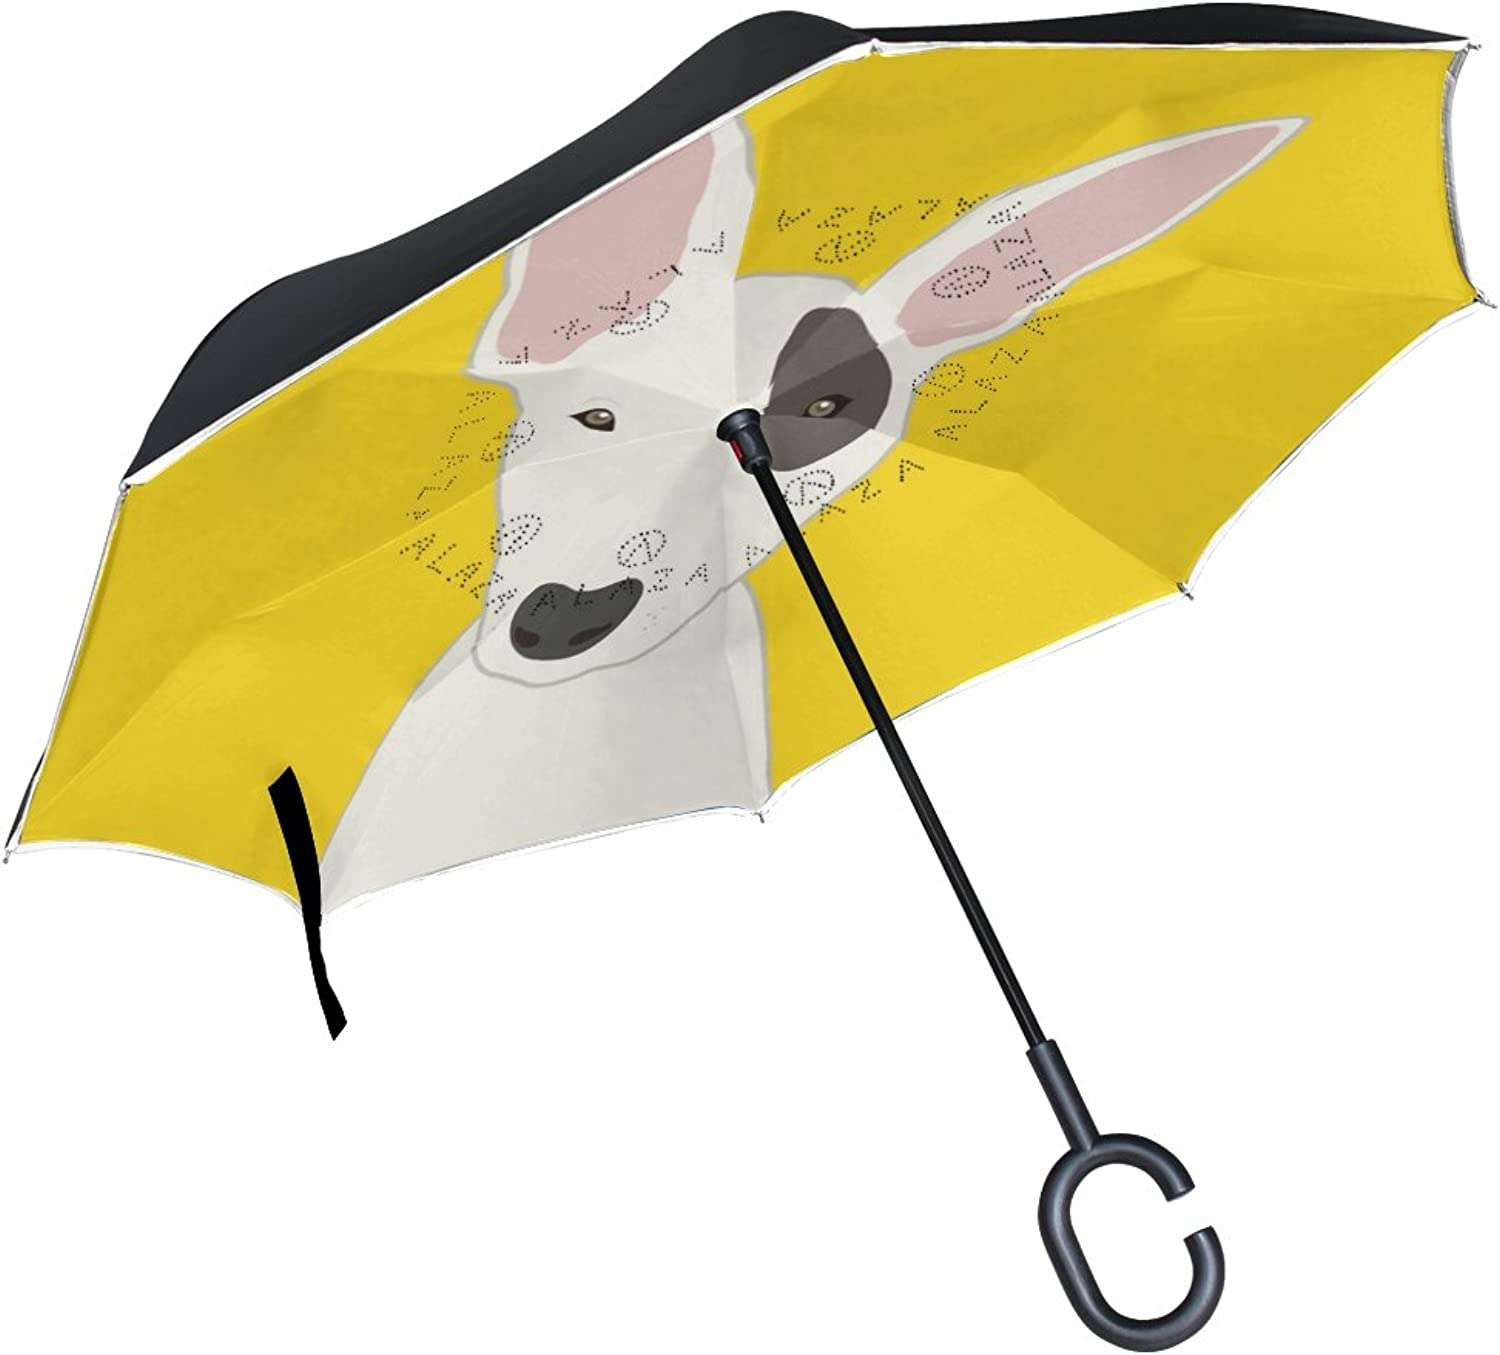 Mydaily Double Layer Ingreened Umbrella Cars Reverse Umbrella Bull Terrier Dog Windproof UV Proof Travel Outdoor Umbrella